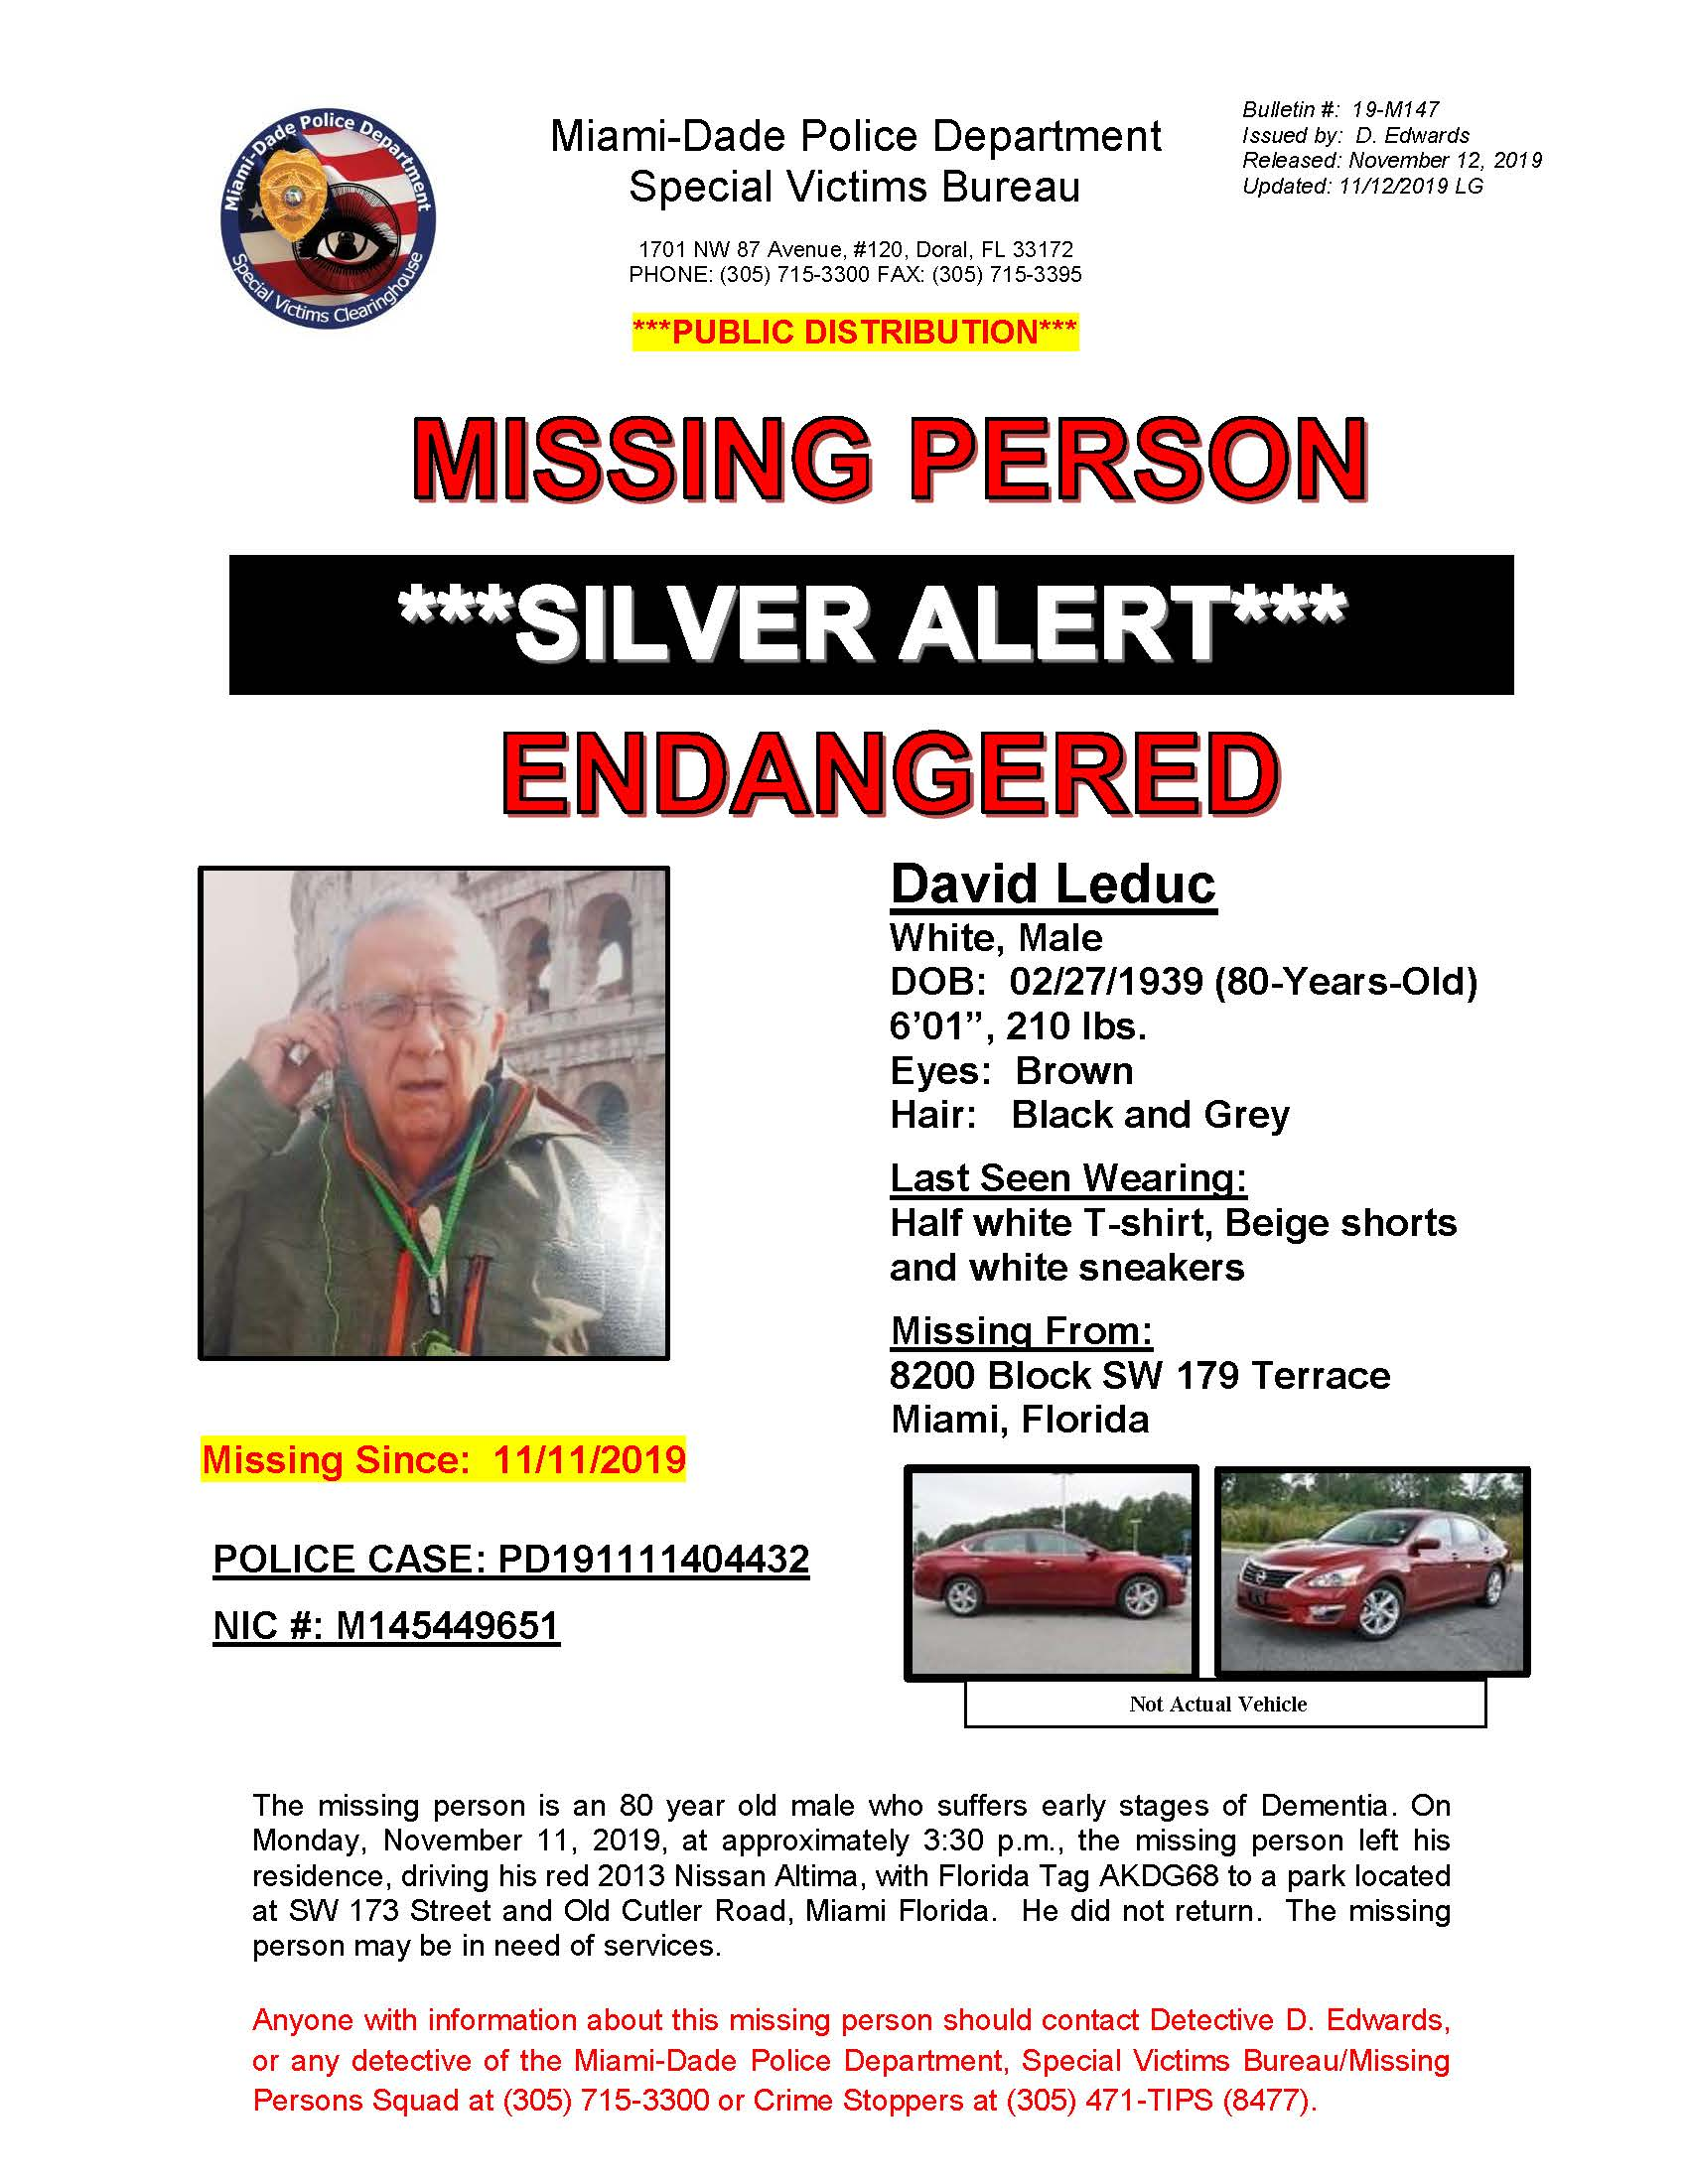 Missing Person Silver Alert Endangered: David Leduc, White male, 80 years old DOB: 02/27/1939 6Ɔ